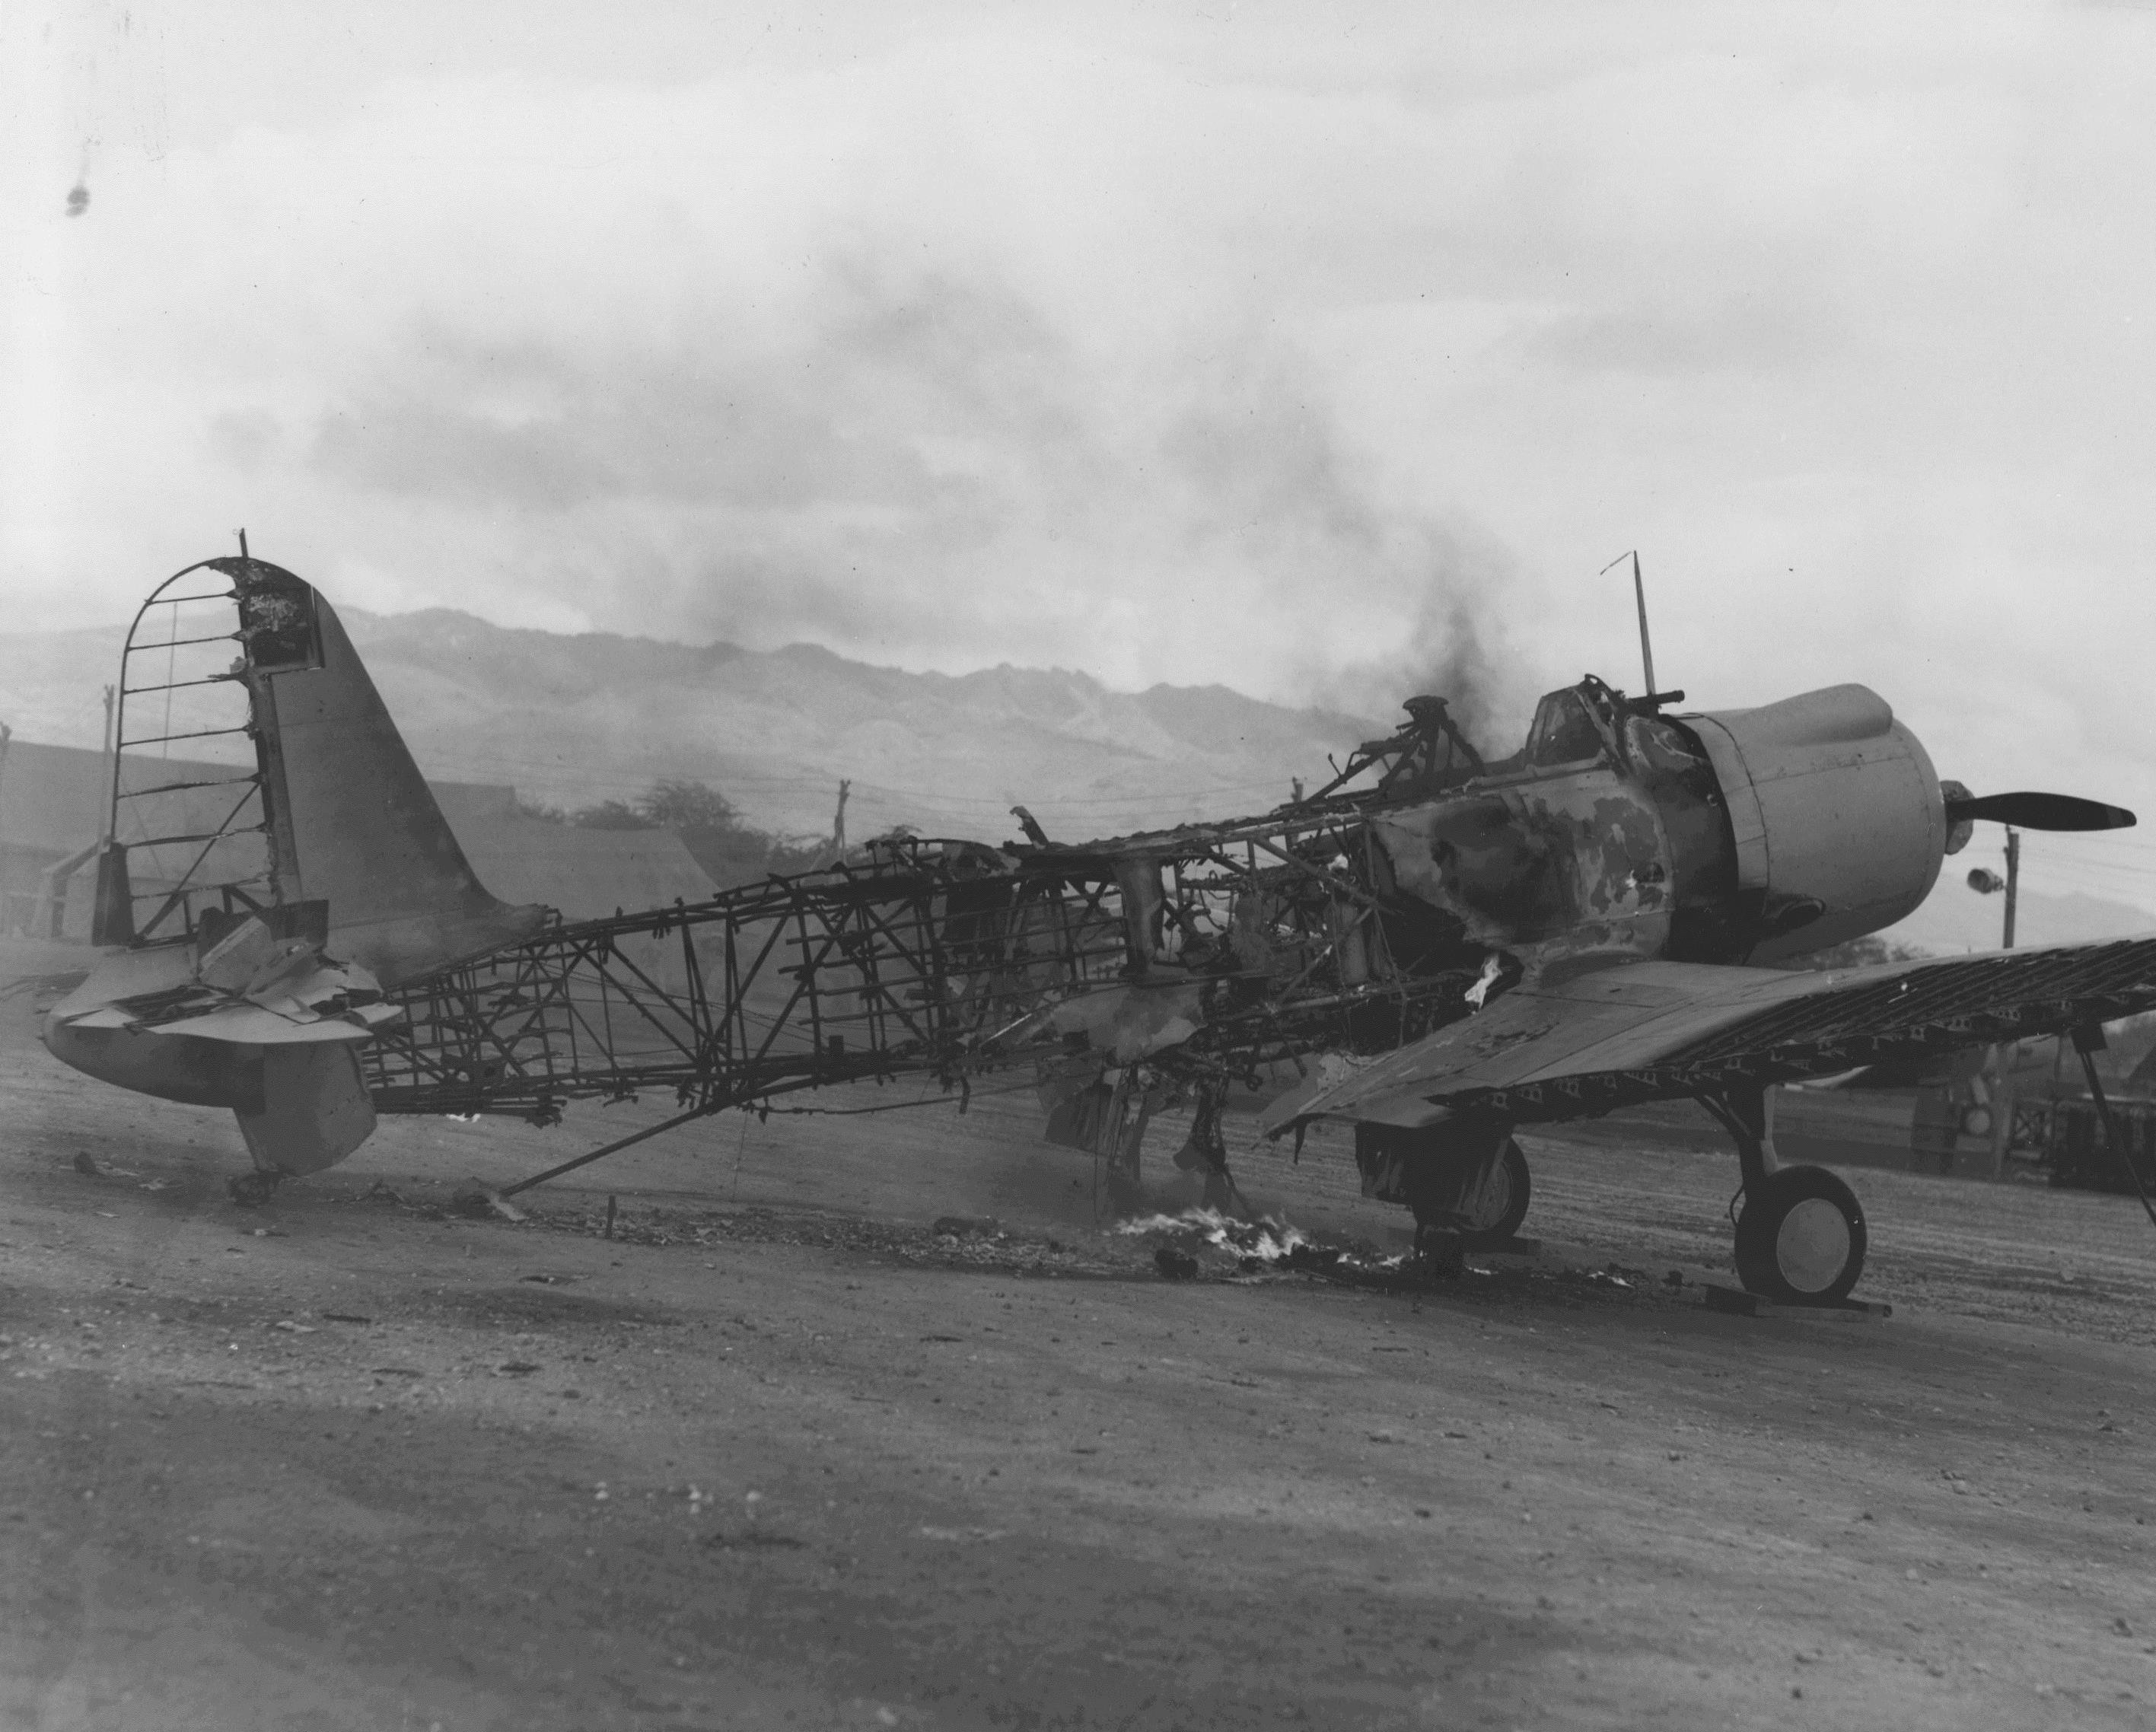 A Vought SB2U Vindicator dive-bomber, still smoldering, shortly after the Japanese attack on Ewa and Pearl Harbor.